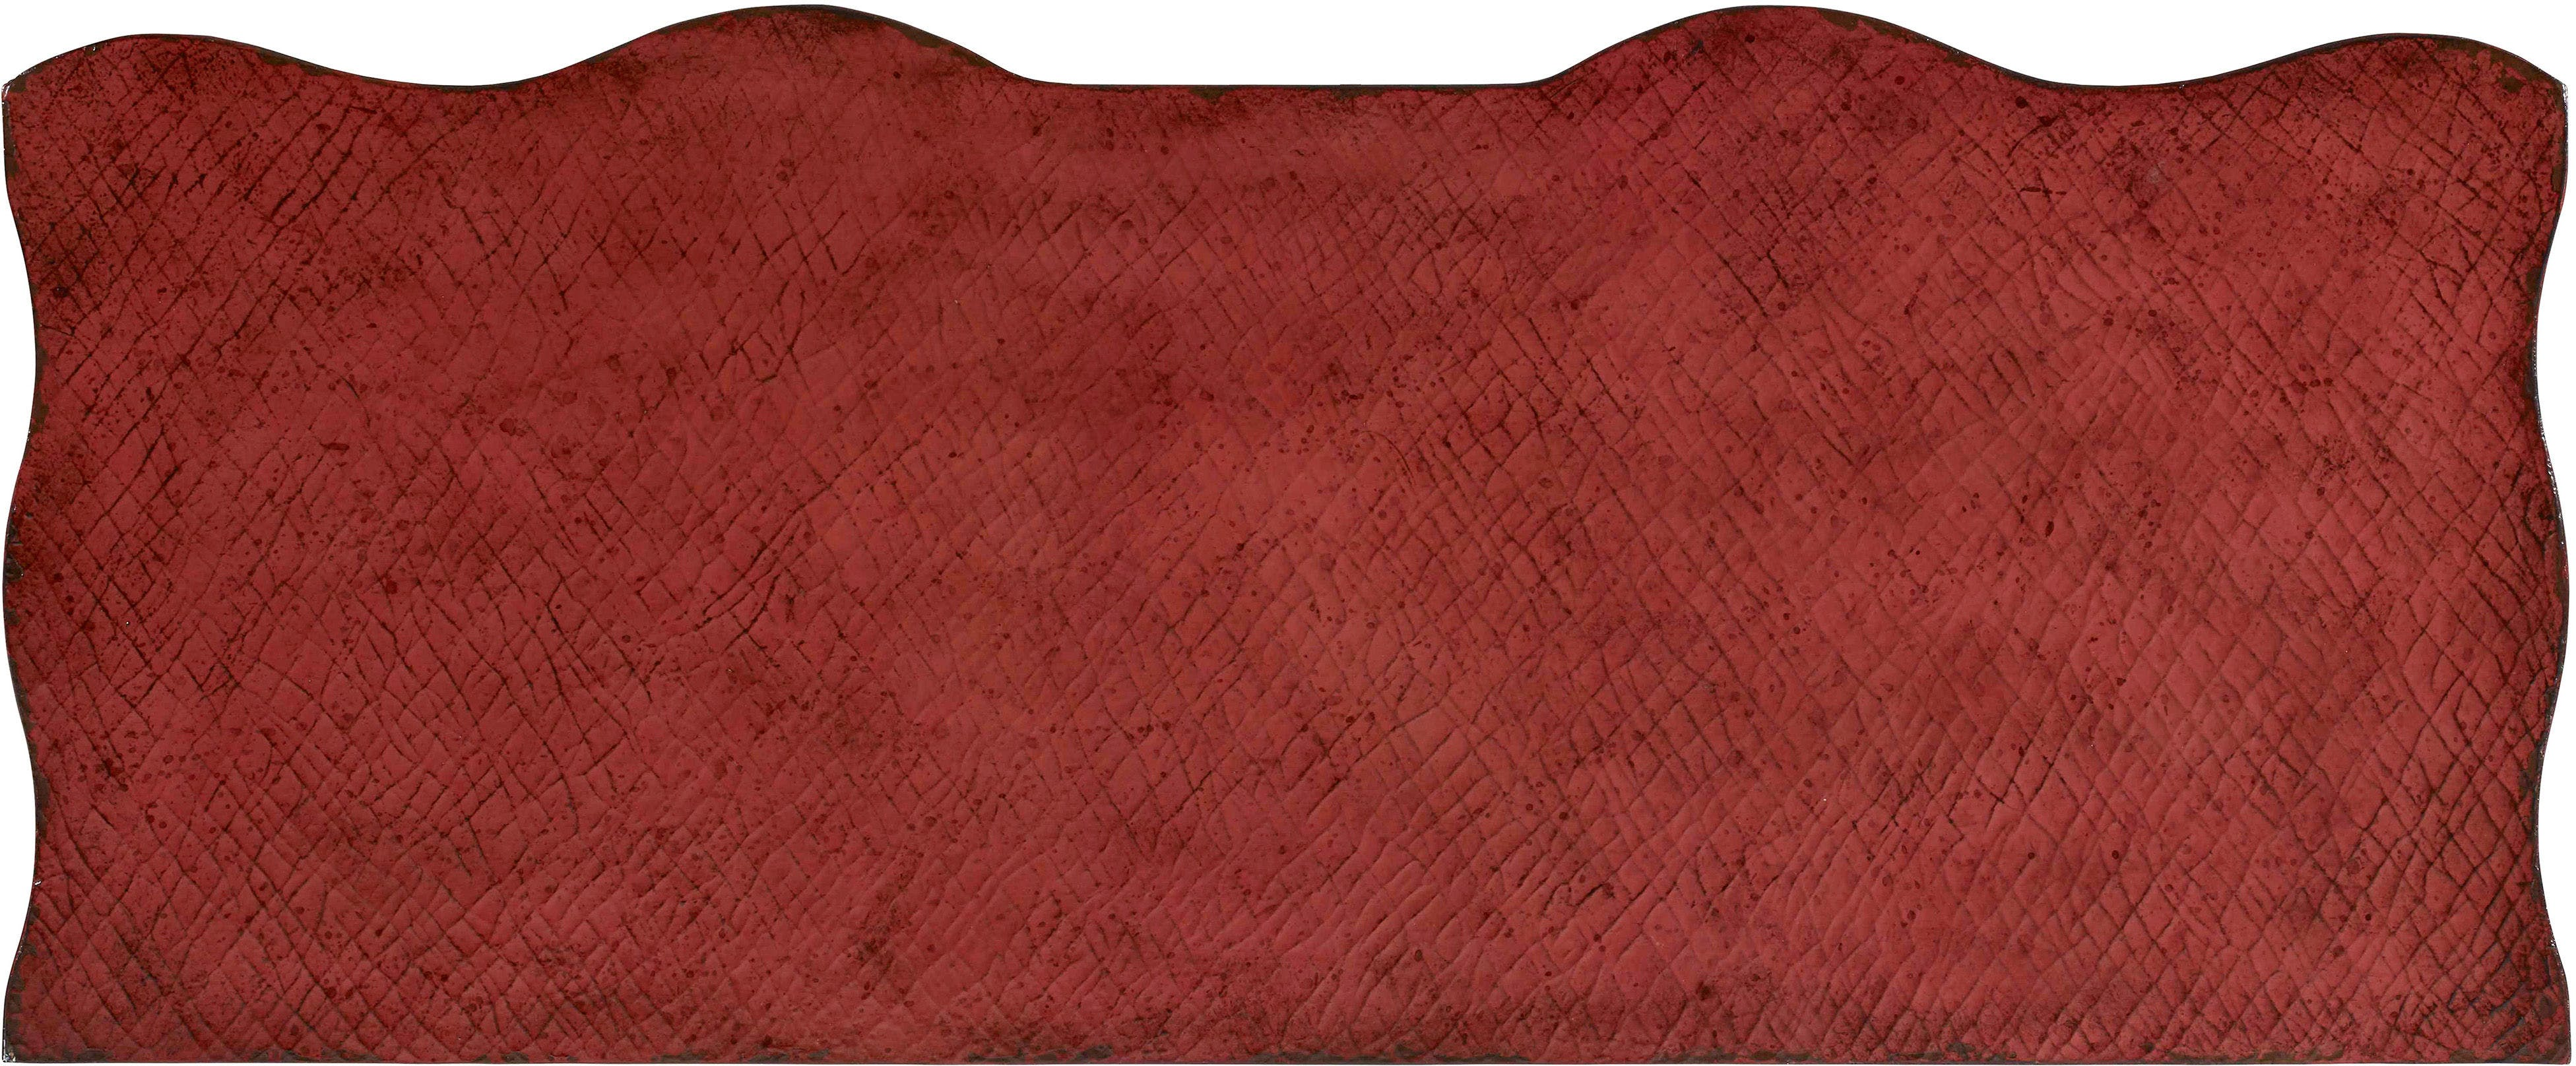 Комод Gramercy Home 638-85255-RED